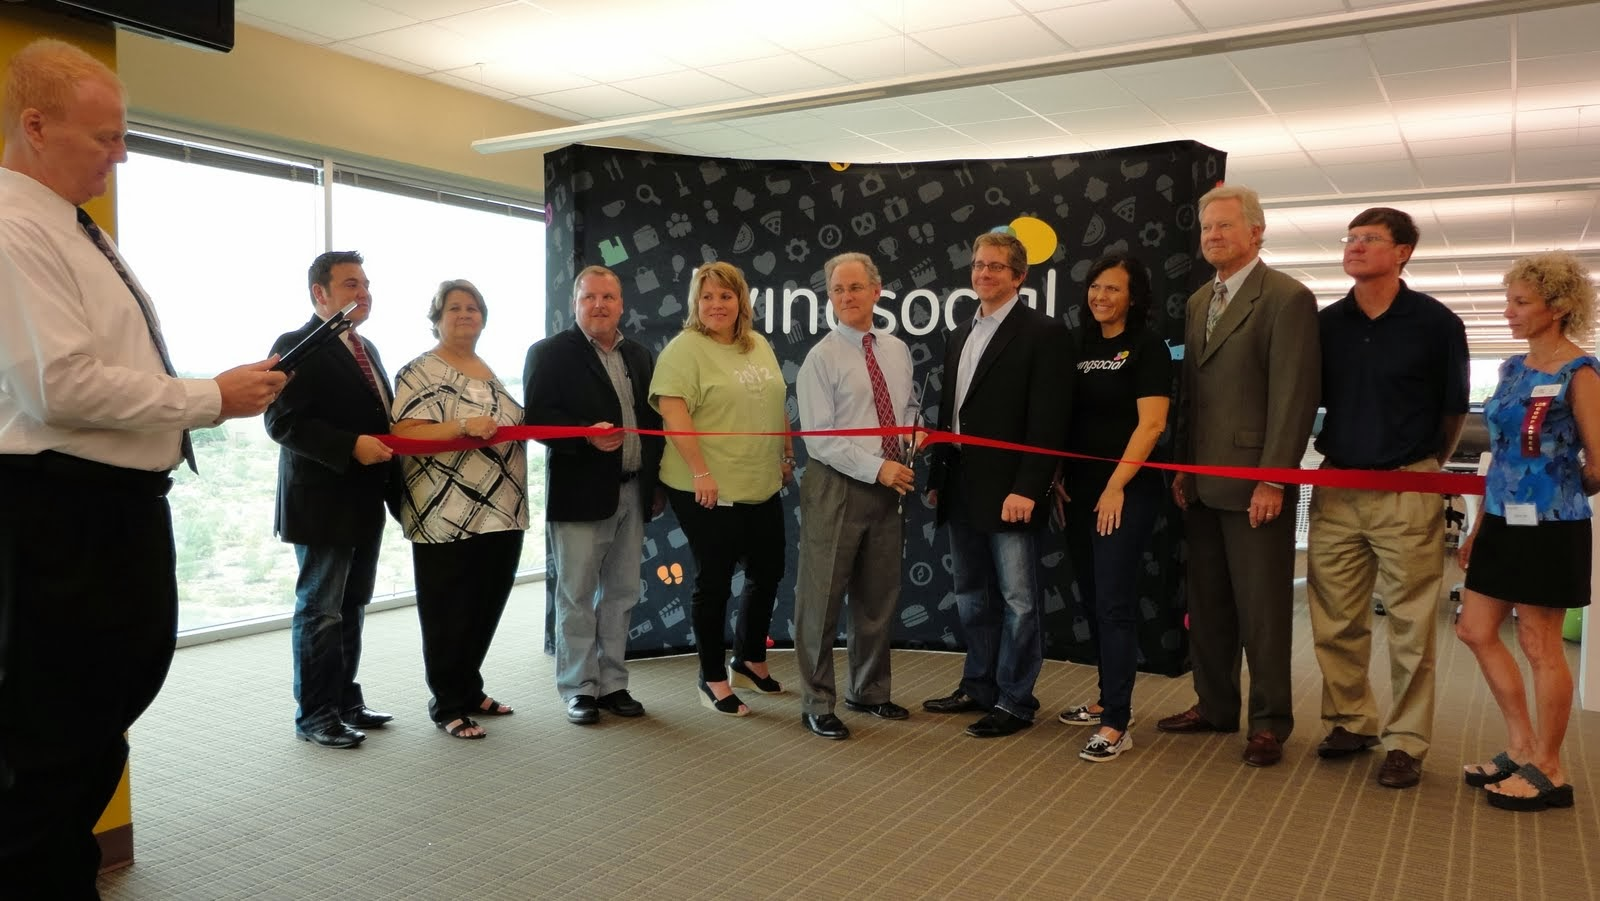 Ribbon cutting ceremony for LivingSocial's Tucson location.